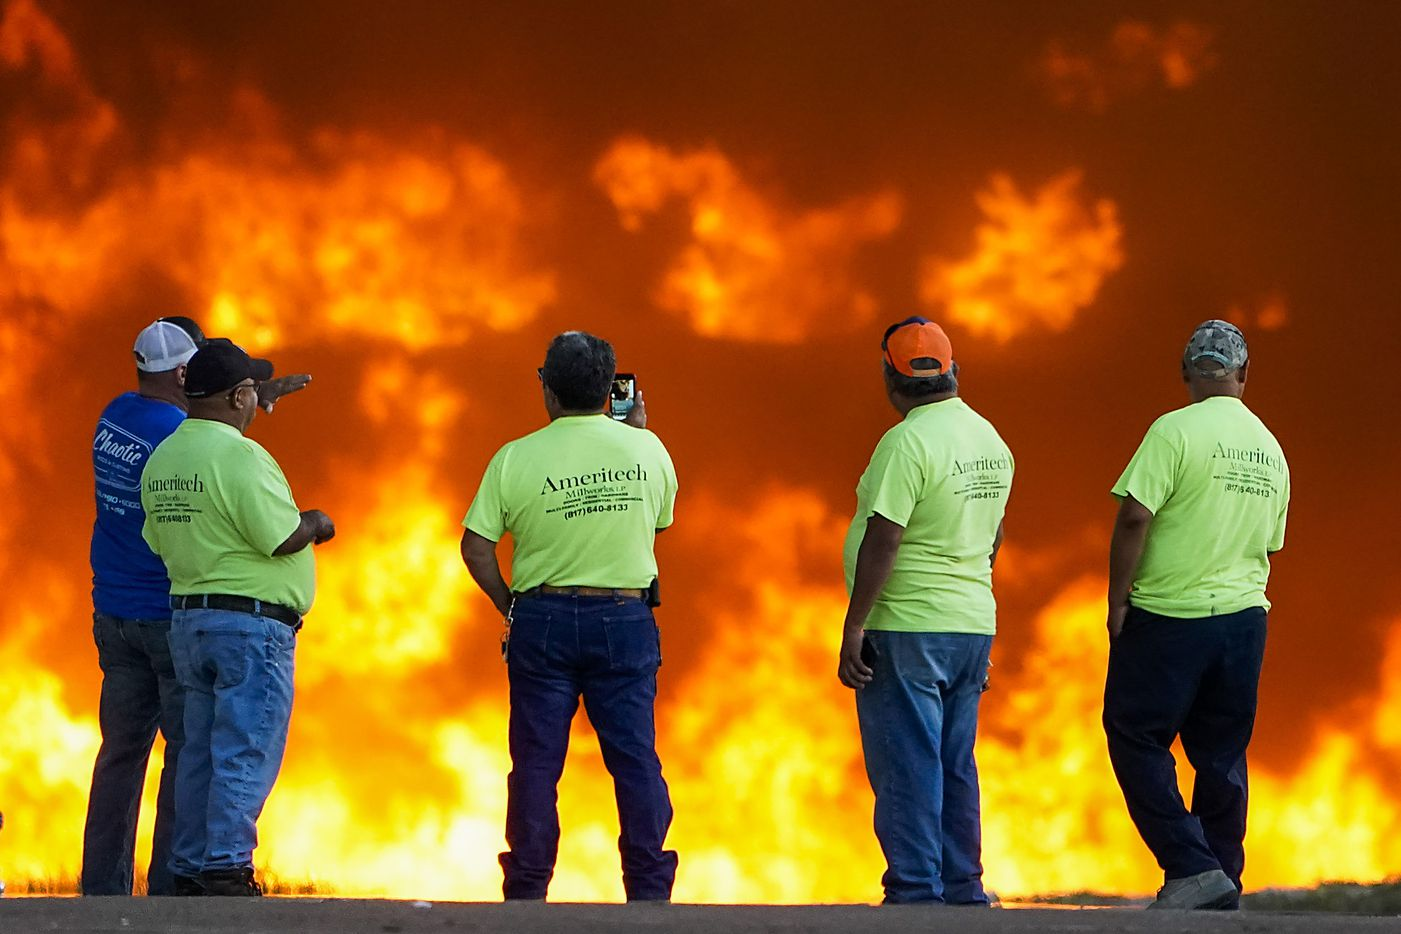 Employees at Ameritech Millworks watch a wall of flames as fire crews battle a massive blaze in an industrial area of Grand Prairie just before sunrise on Wednesday, Aug. 19, 2020.